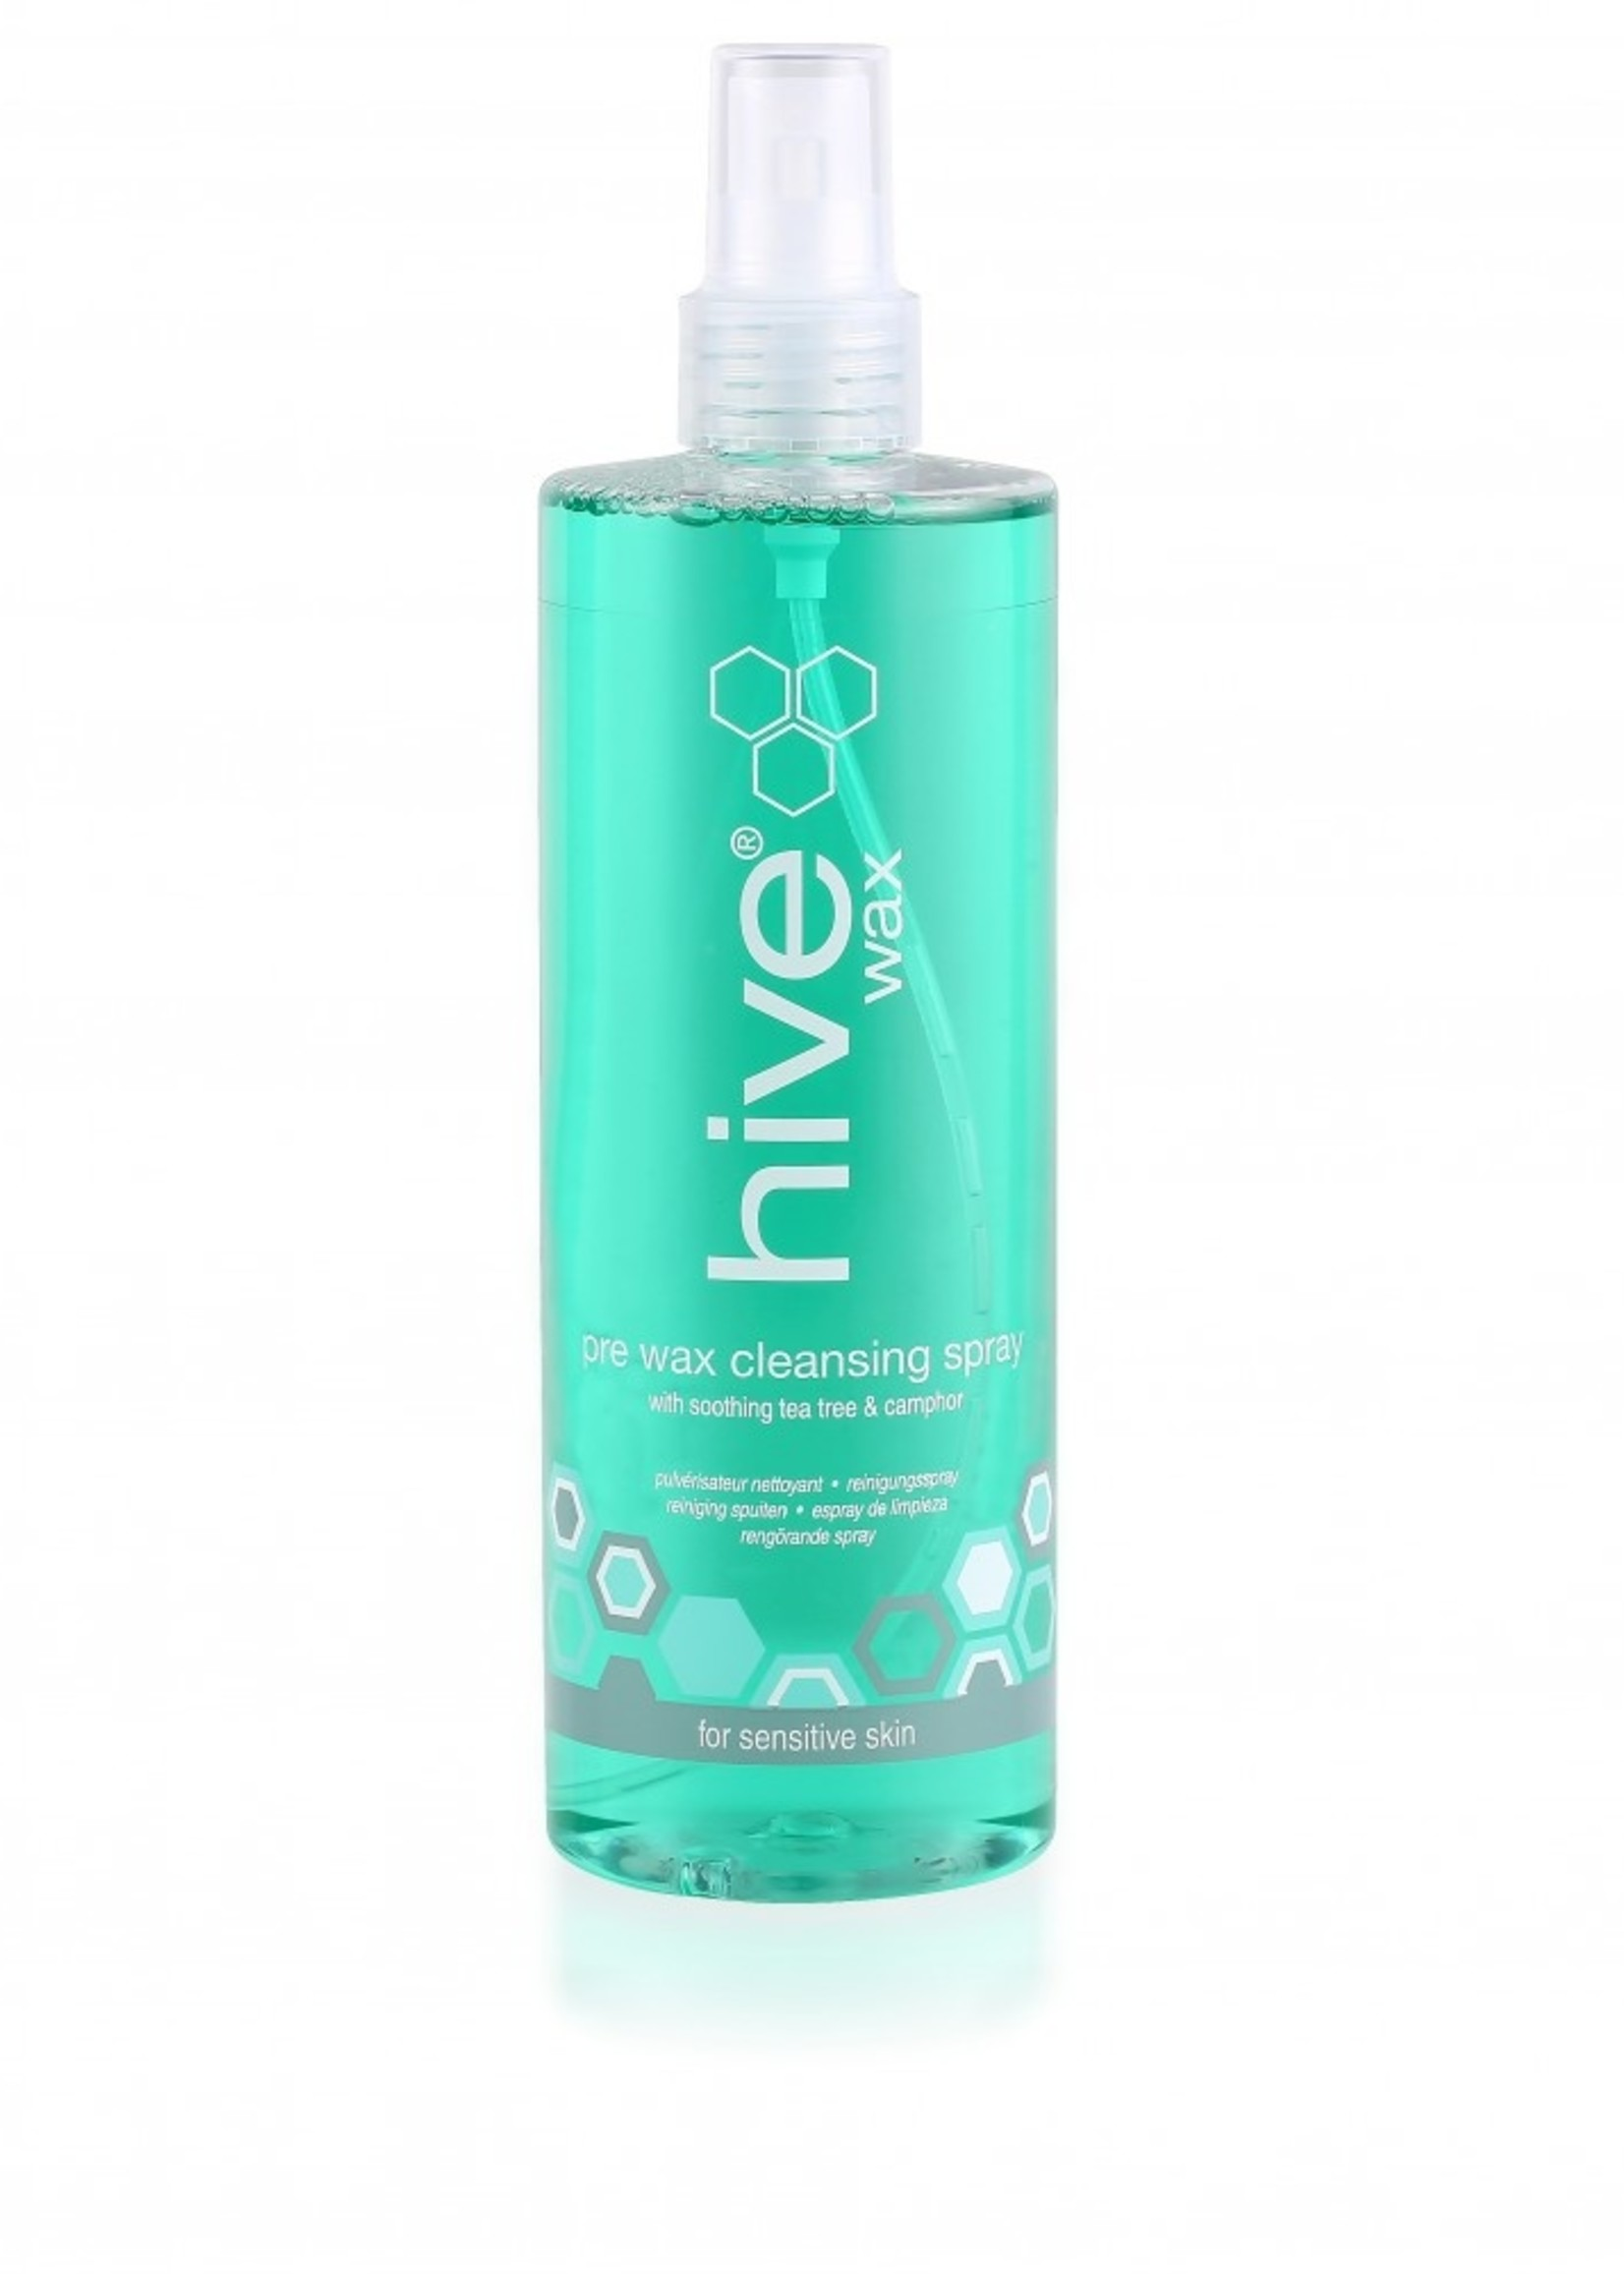 Hive of Beauty Pre Wax cleansing spray with Tea Tree oil 400ml